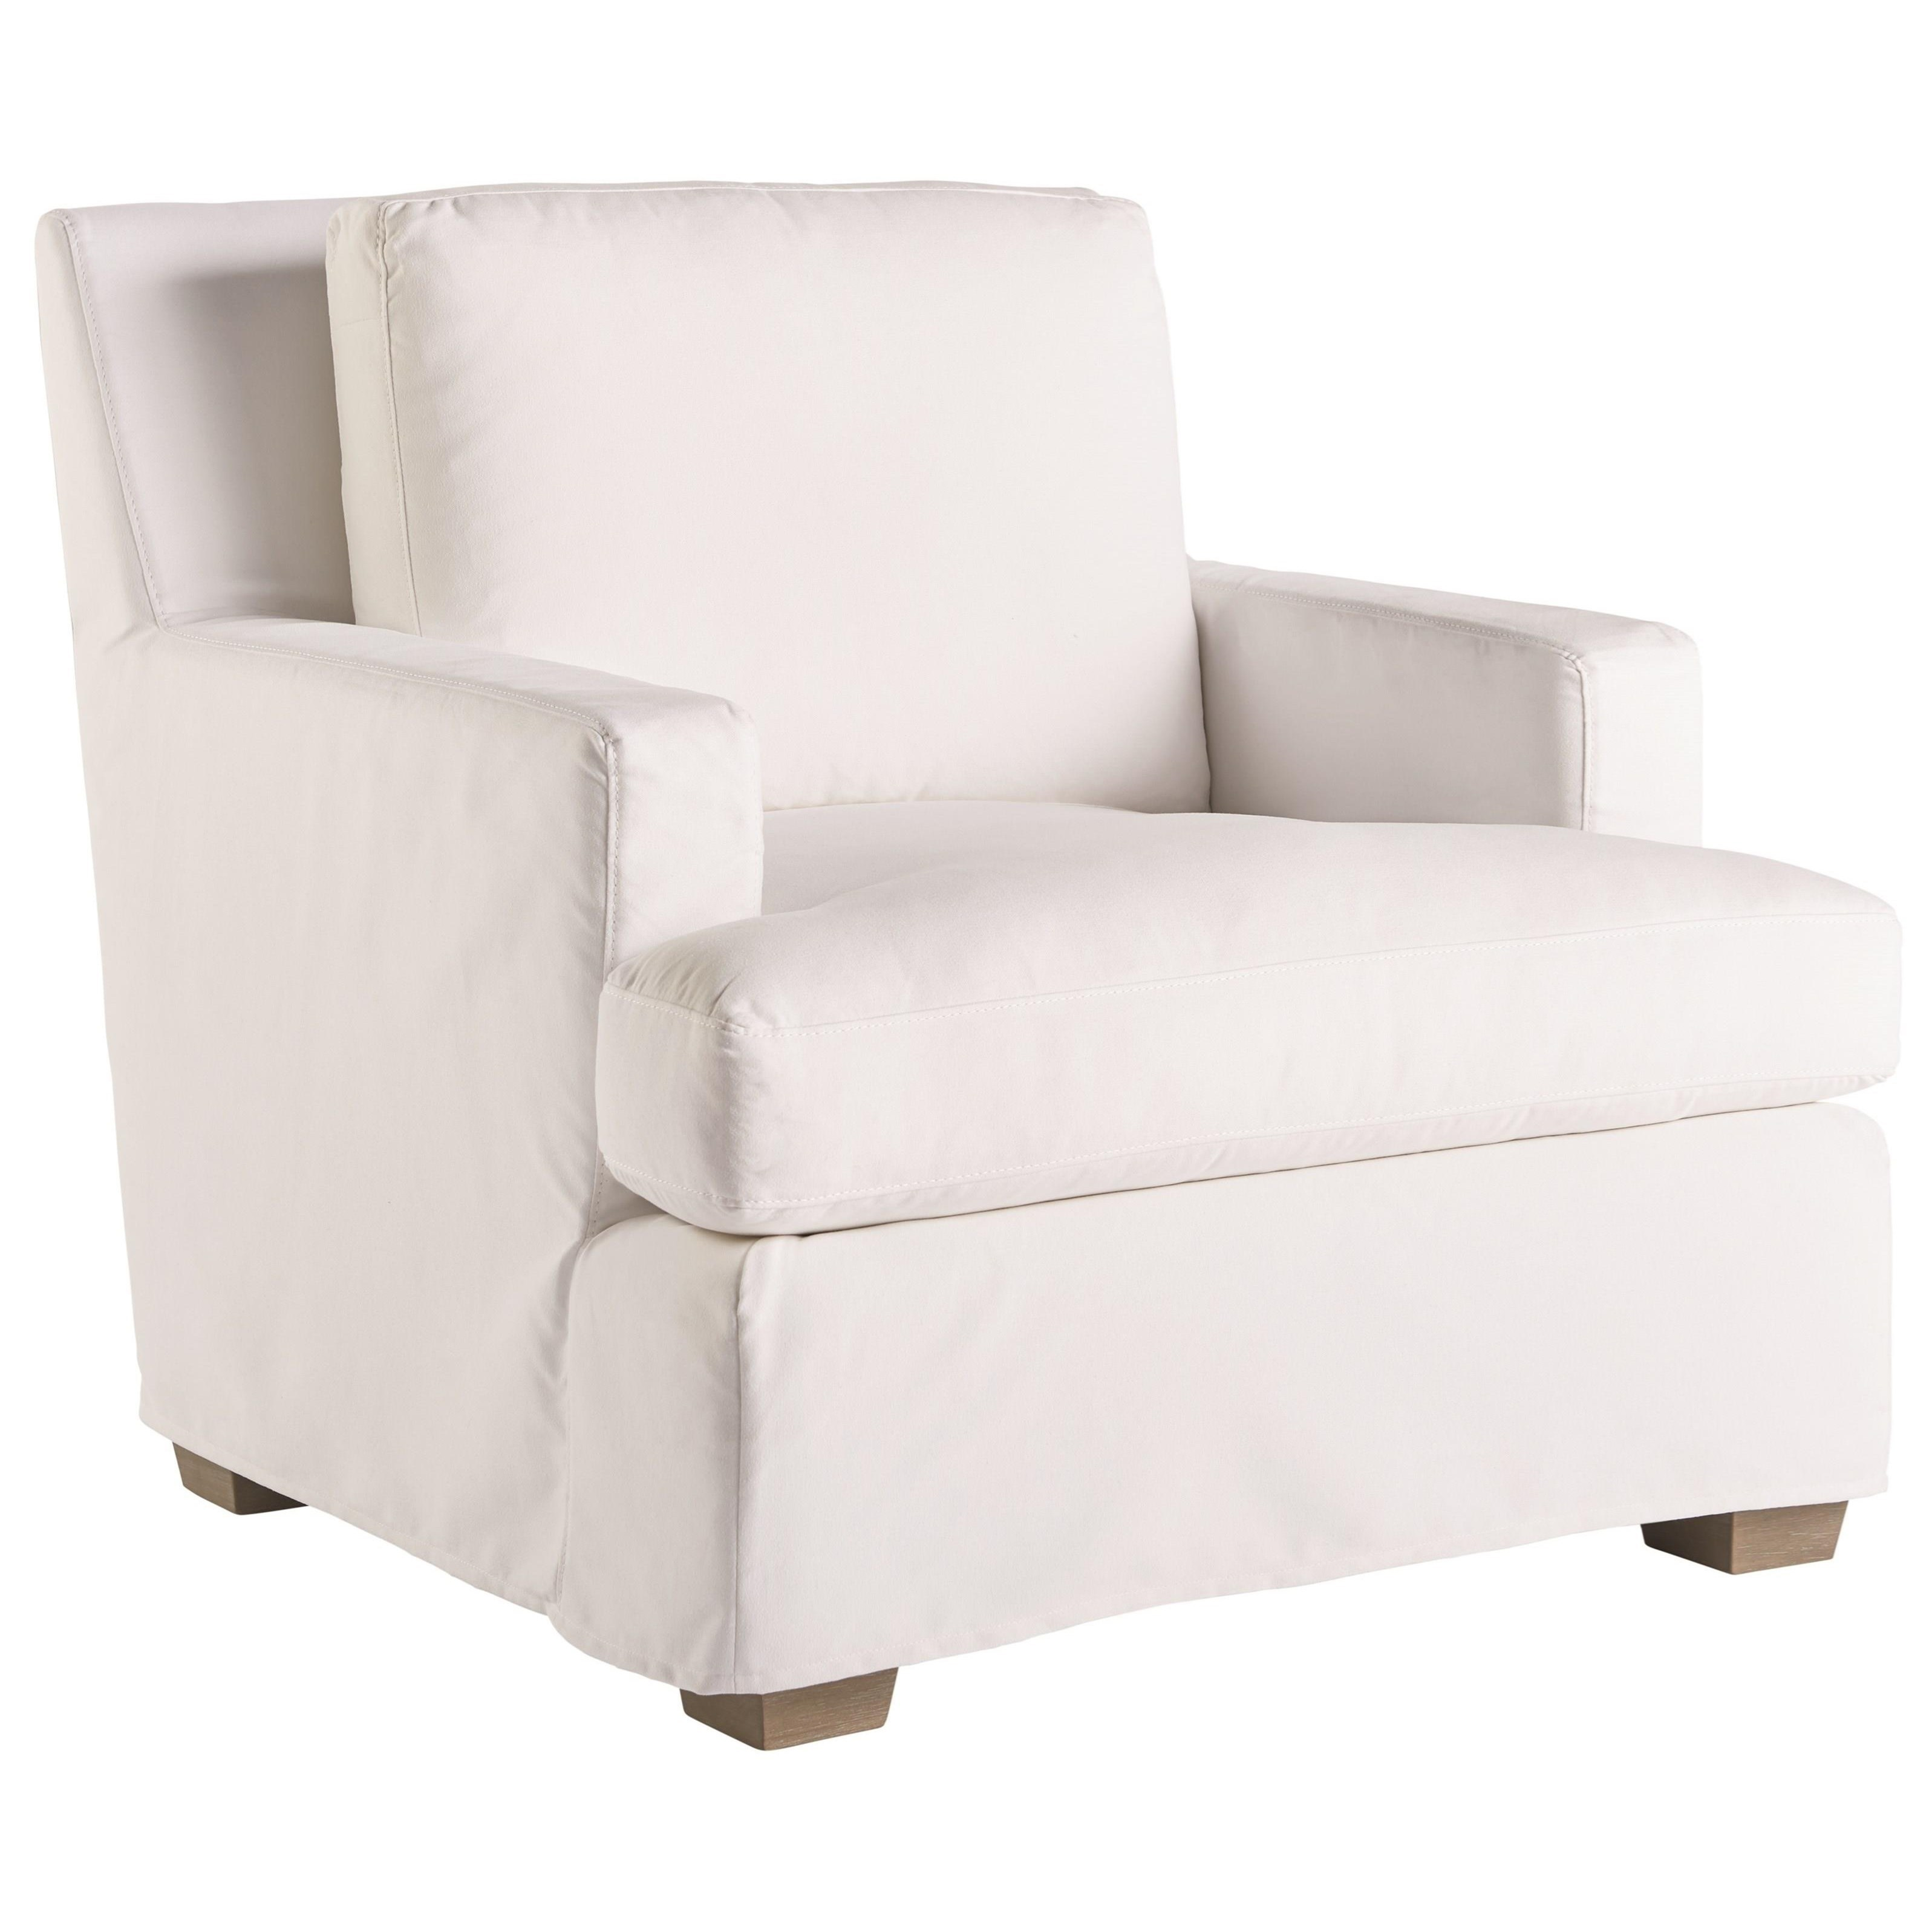 Love. Joy. Bliss.-Miranda Kerr Home Malibu Slipcover Chair by Universal at Baer's Furniture